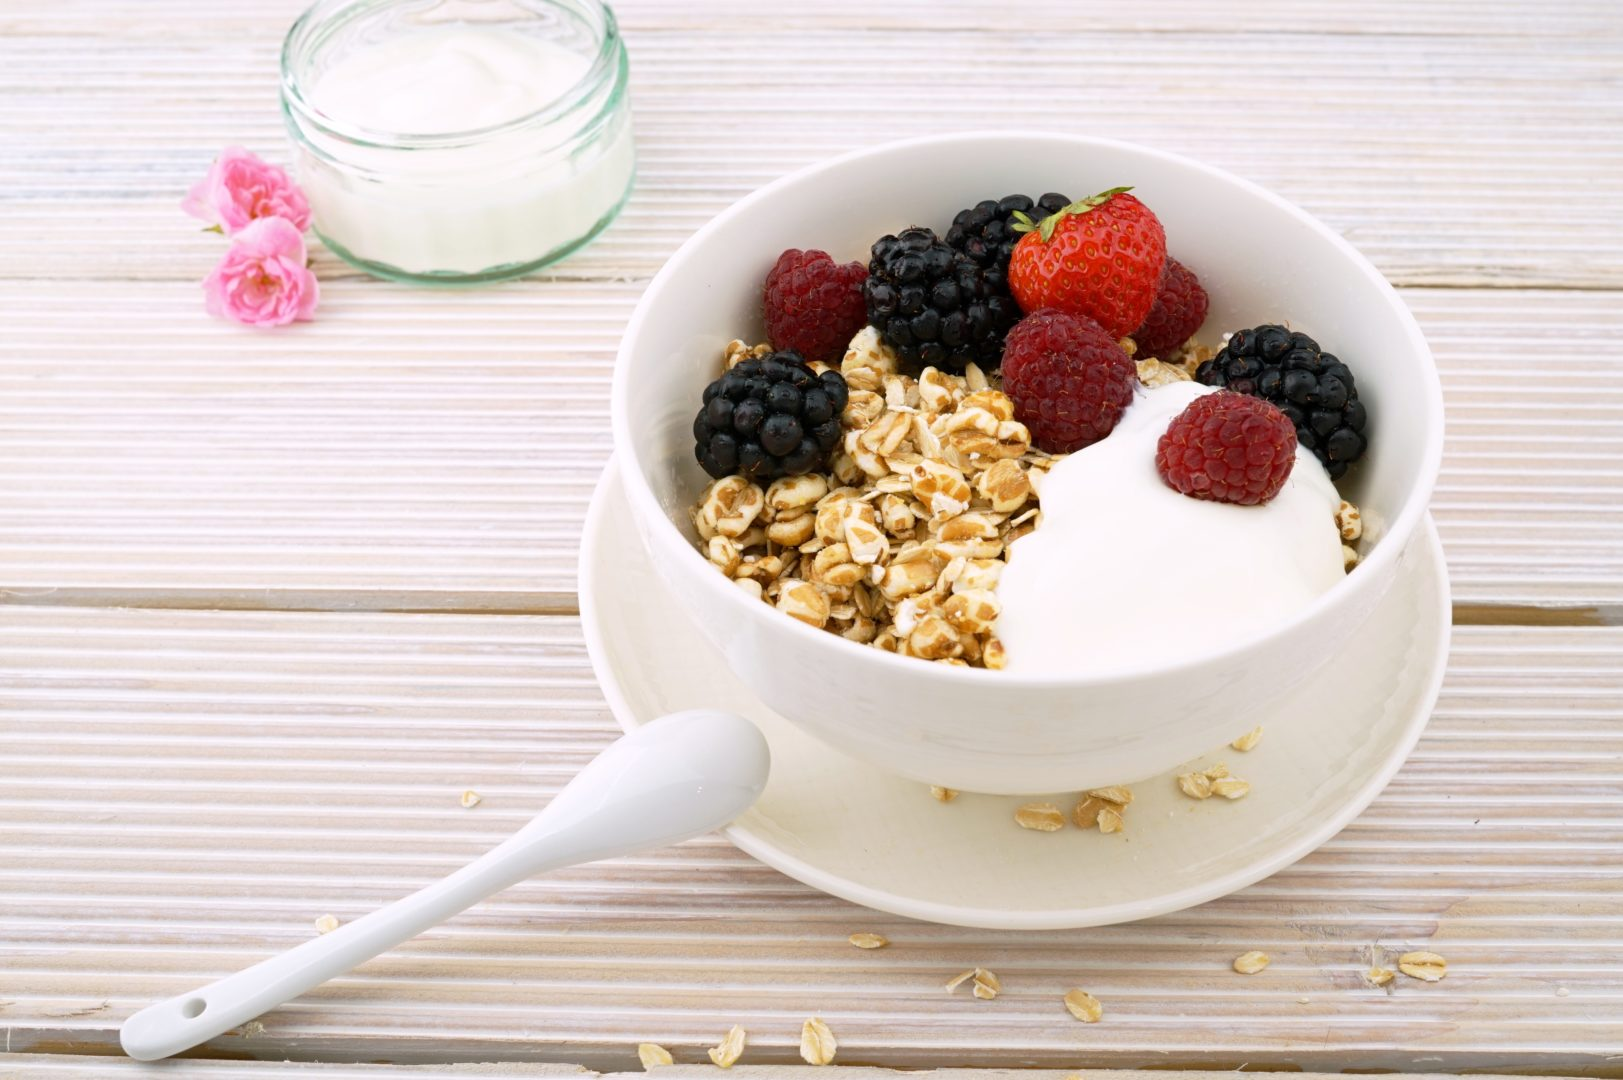 Cup of yogurt with berries and granola